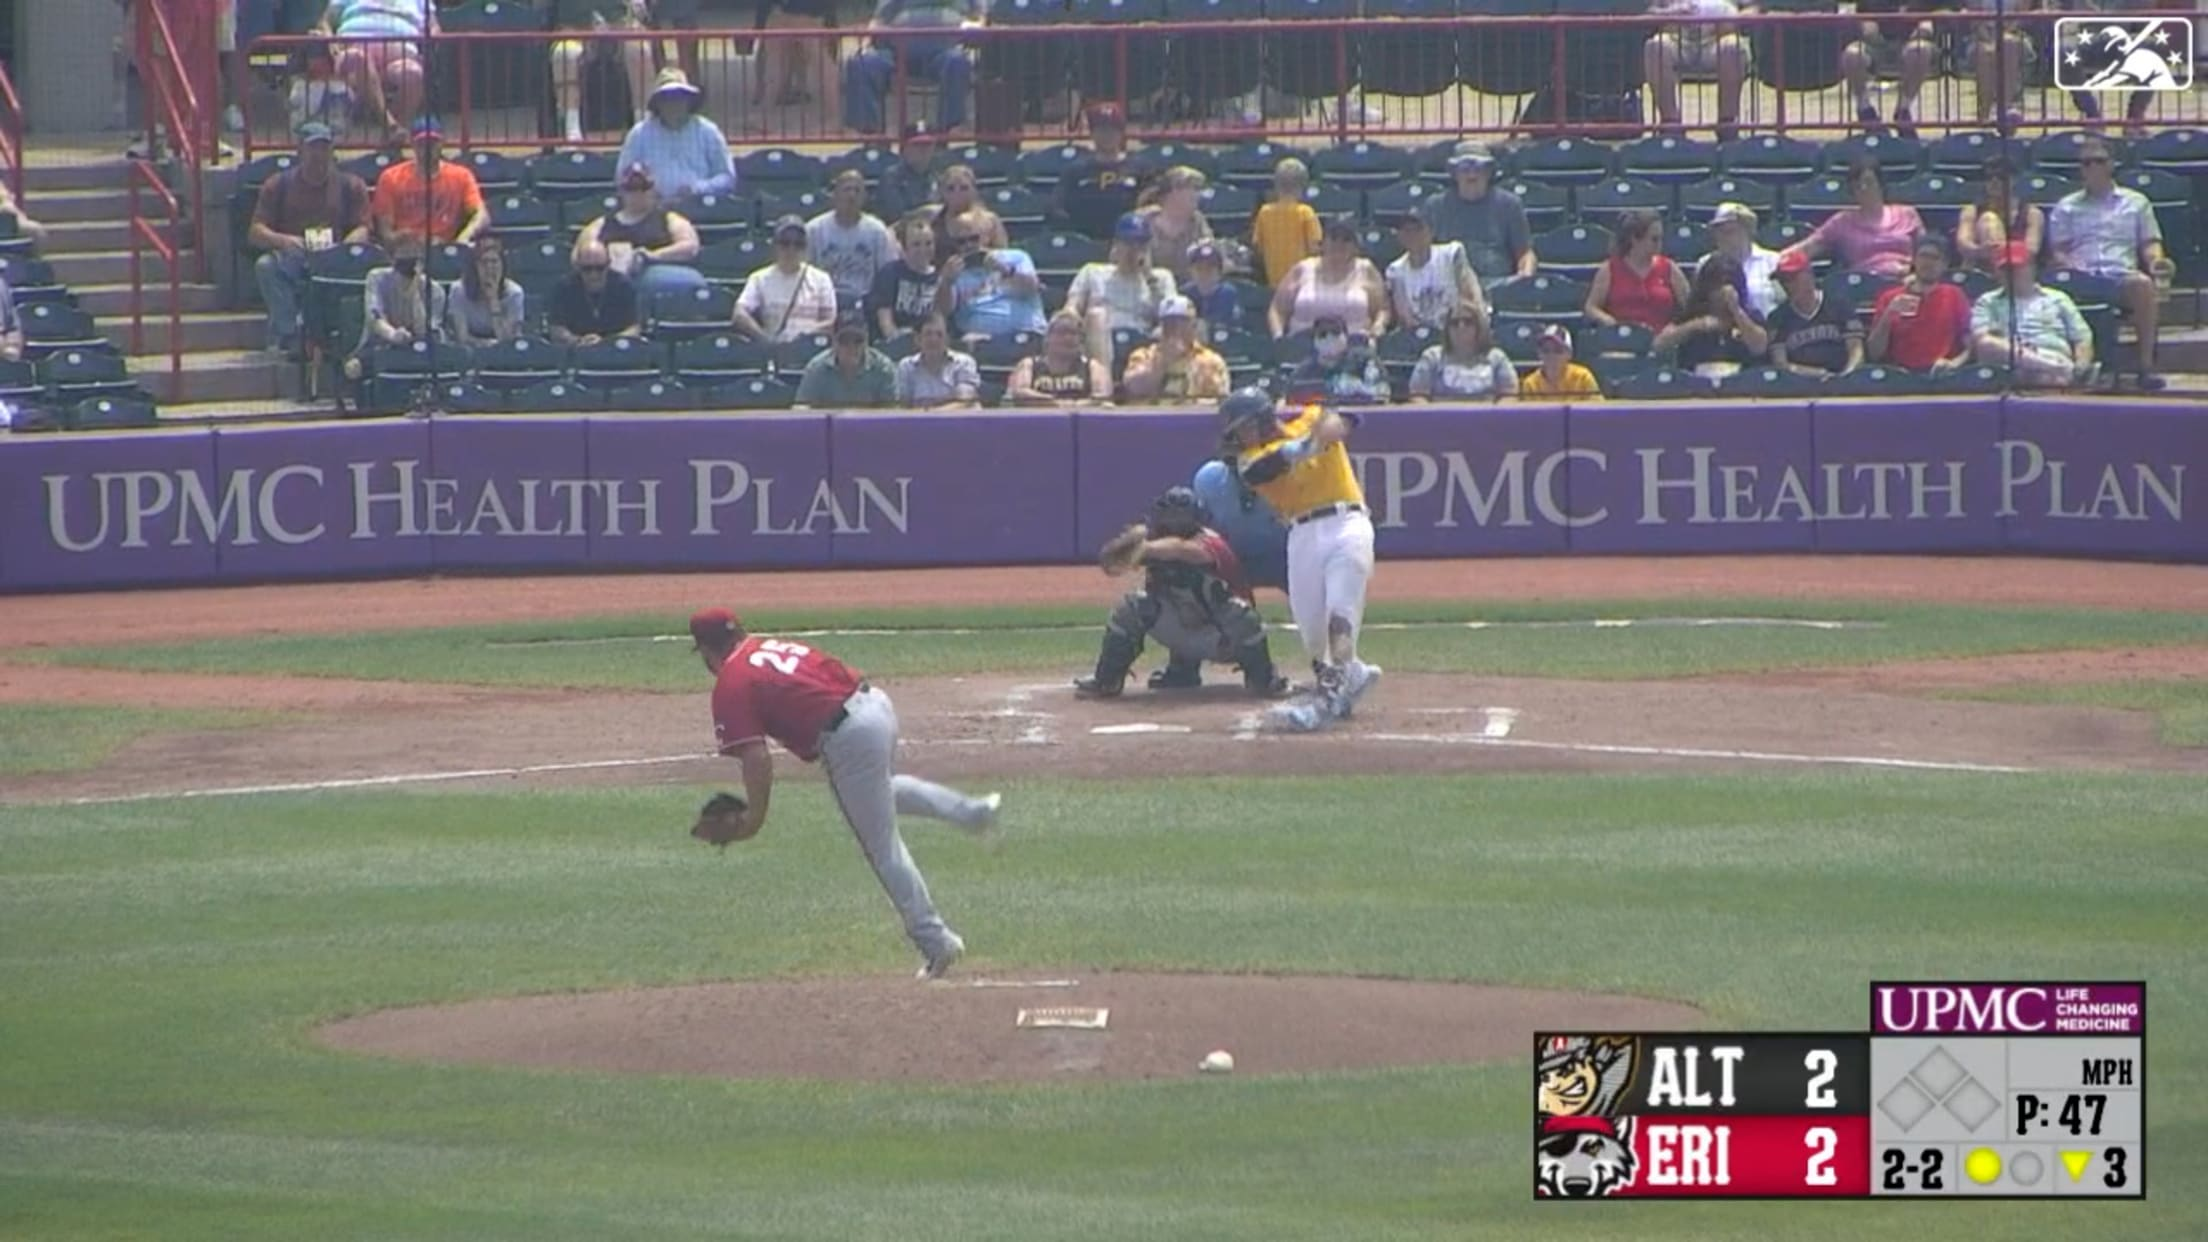 Torkelson smashes second Erie HR